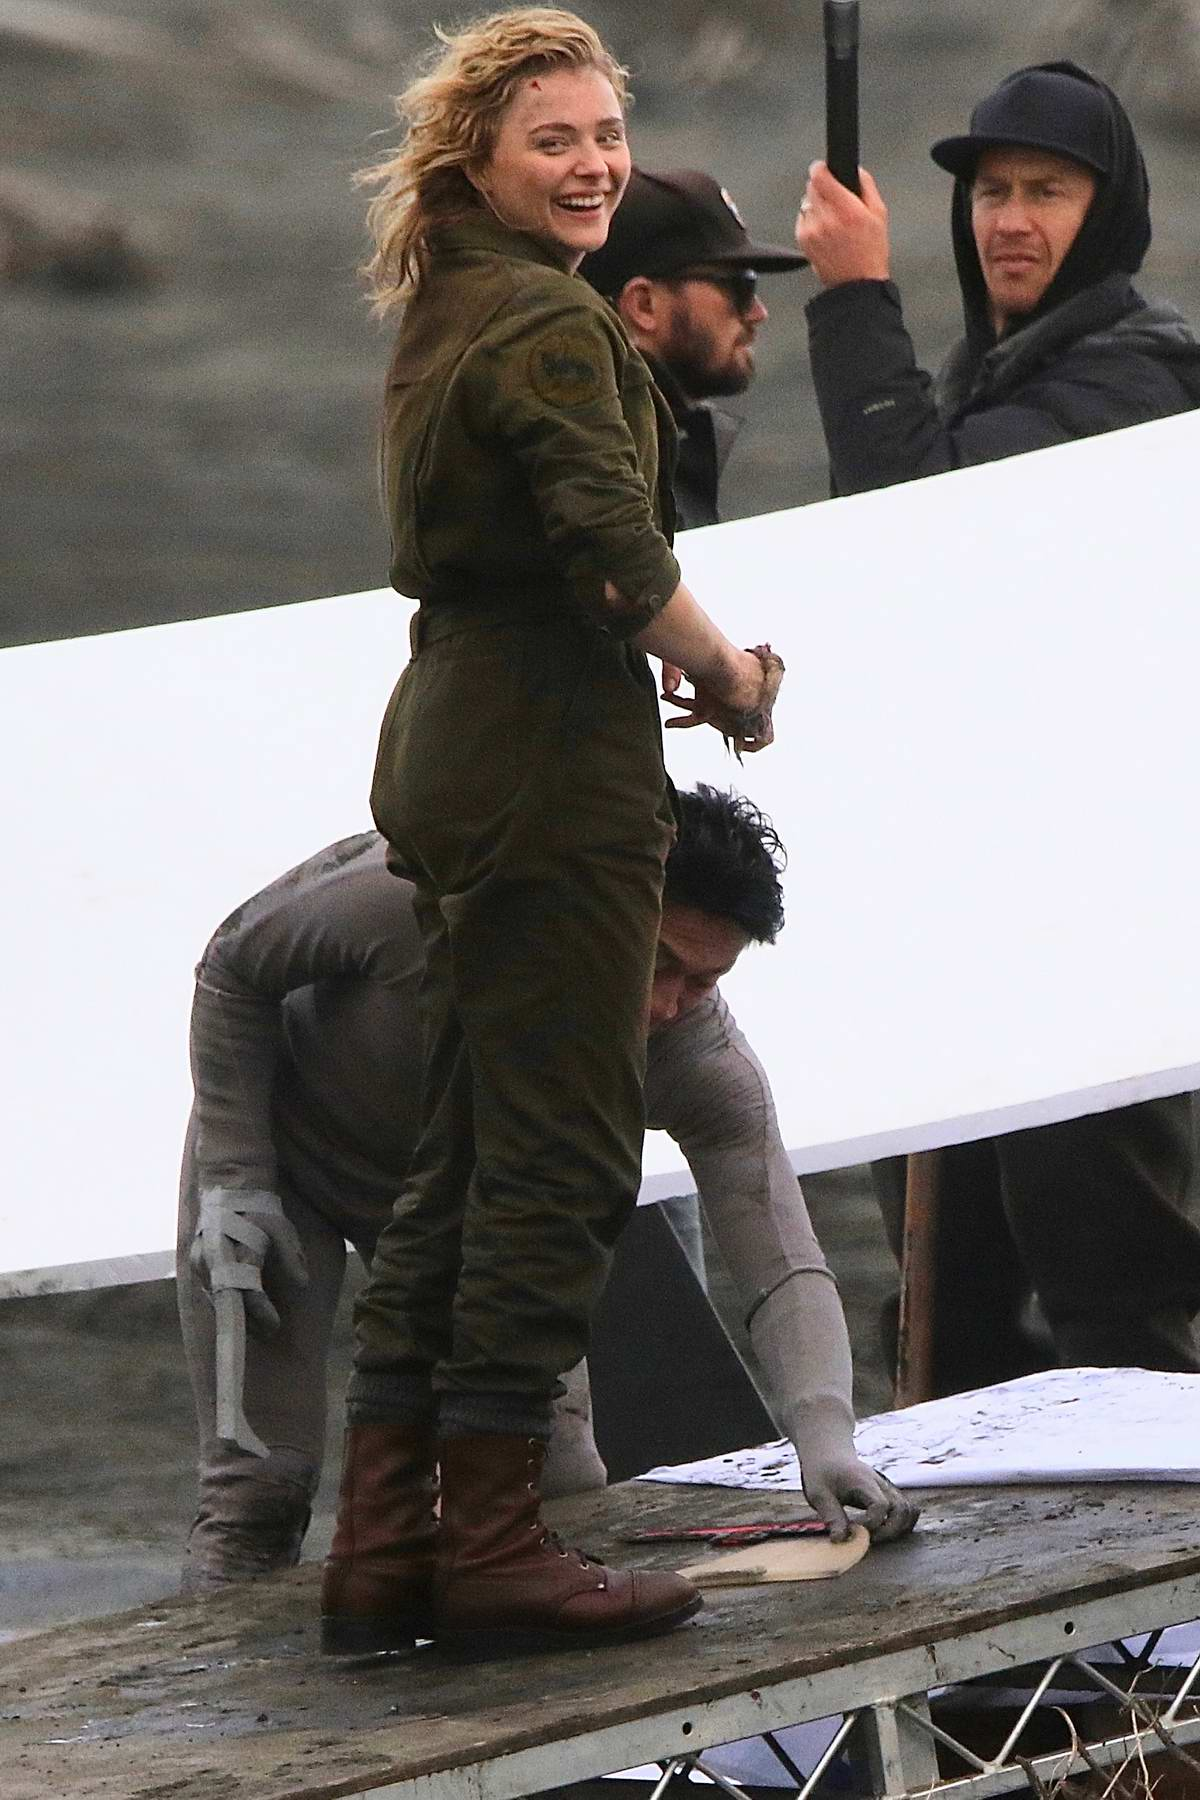 chloe grace moretz spotted filming an action scene for her ...